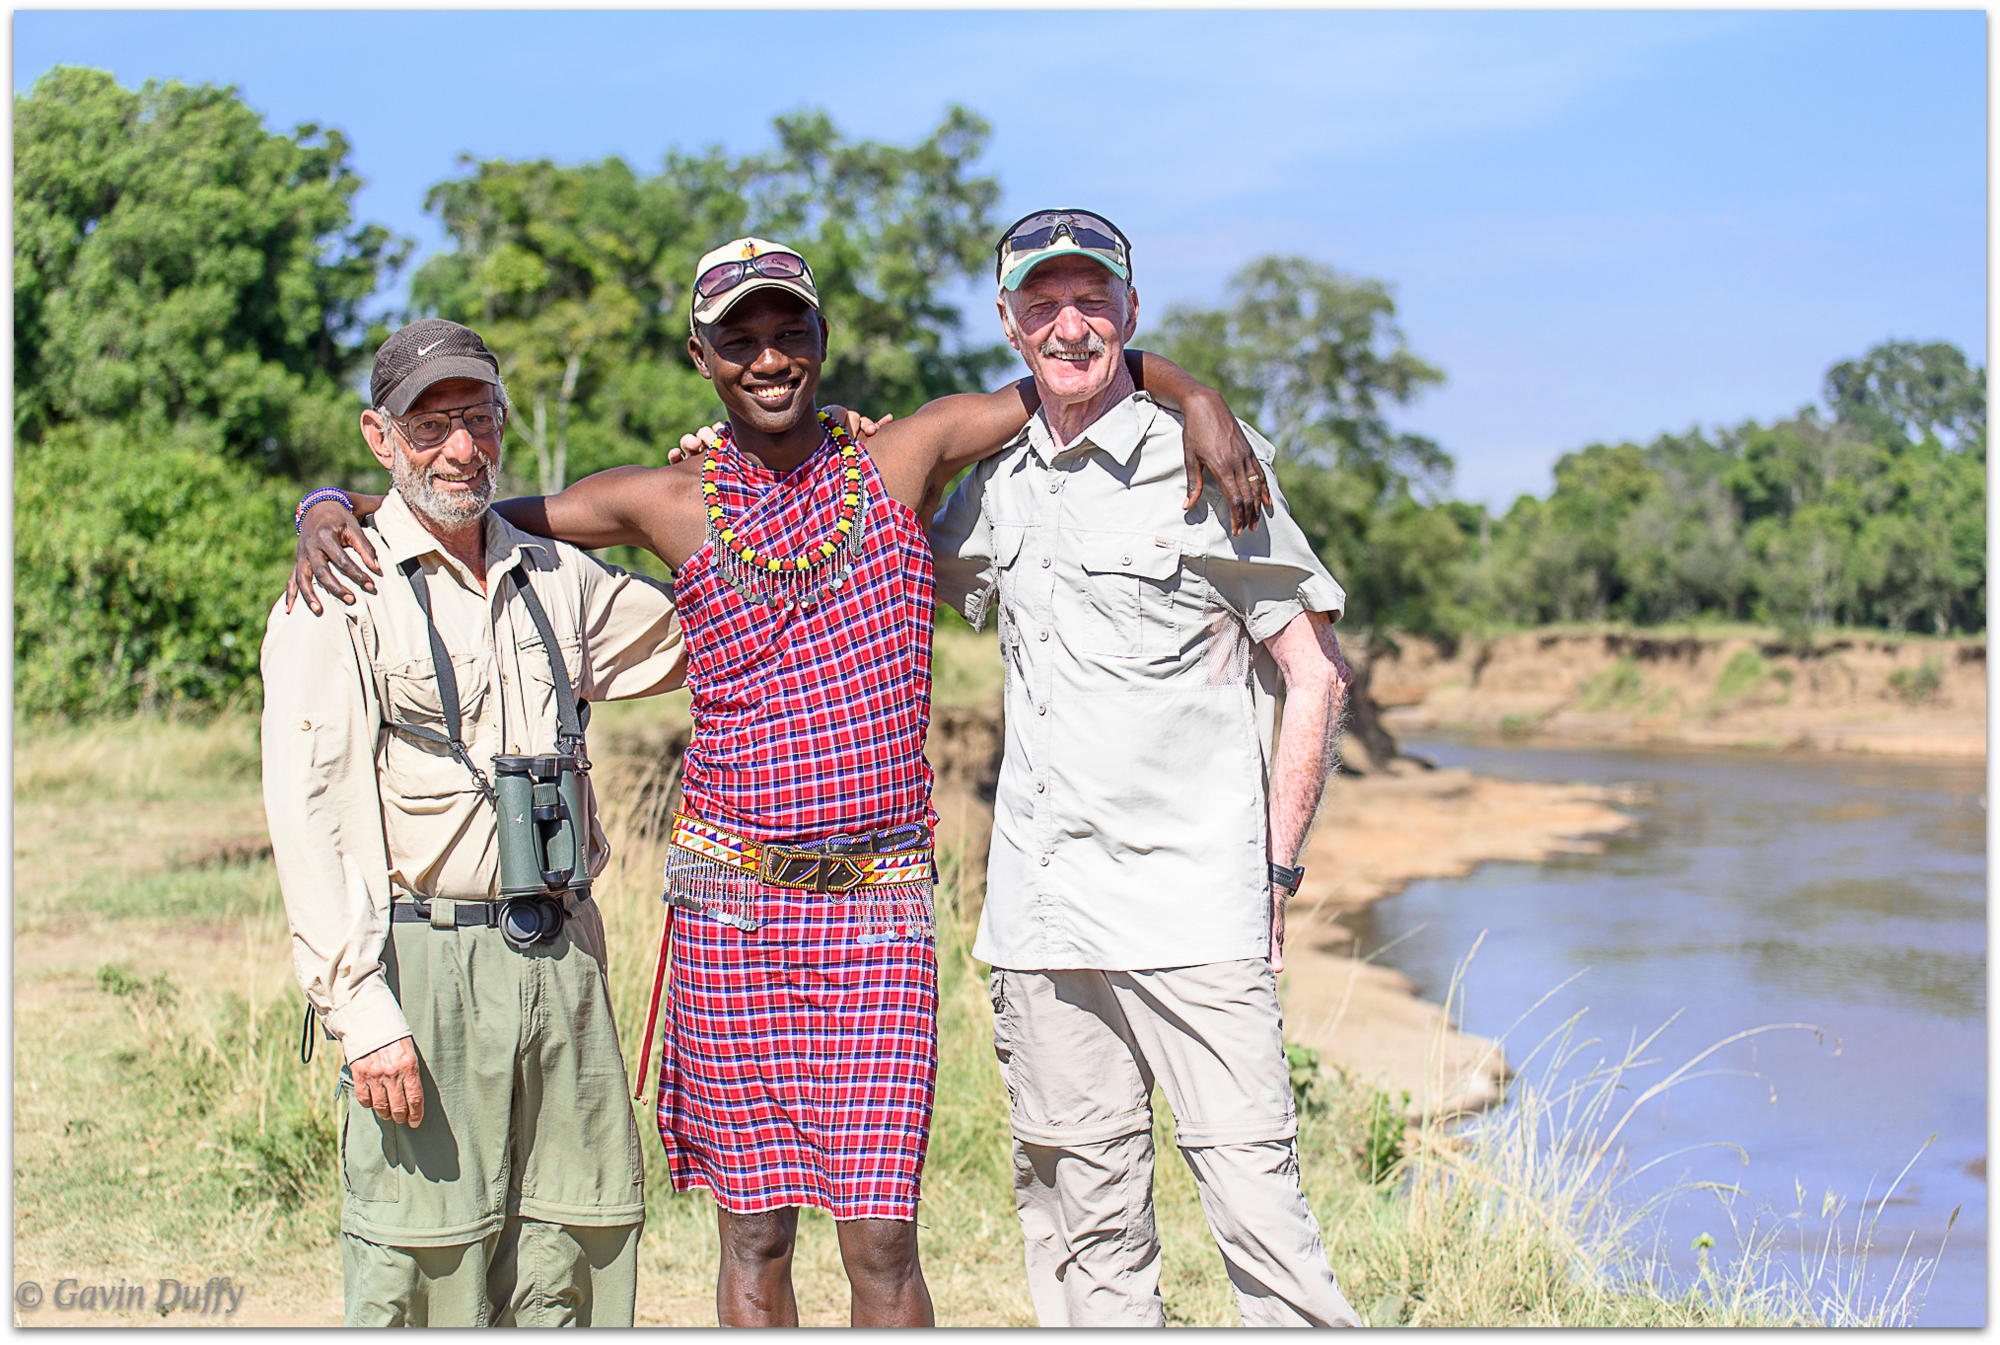 Geoff and Gavin with Jonathan, our guide © Gavin Duffy